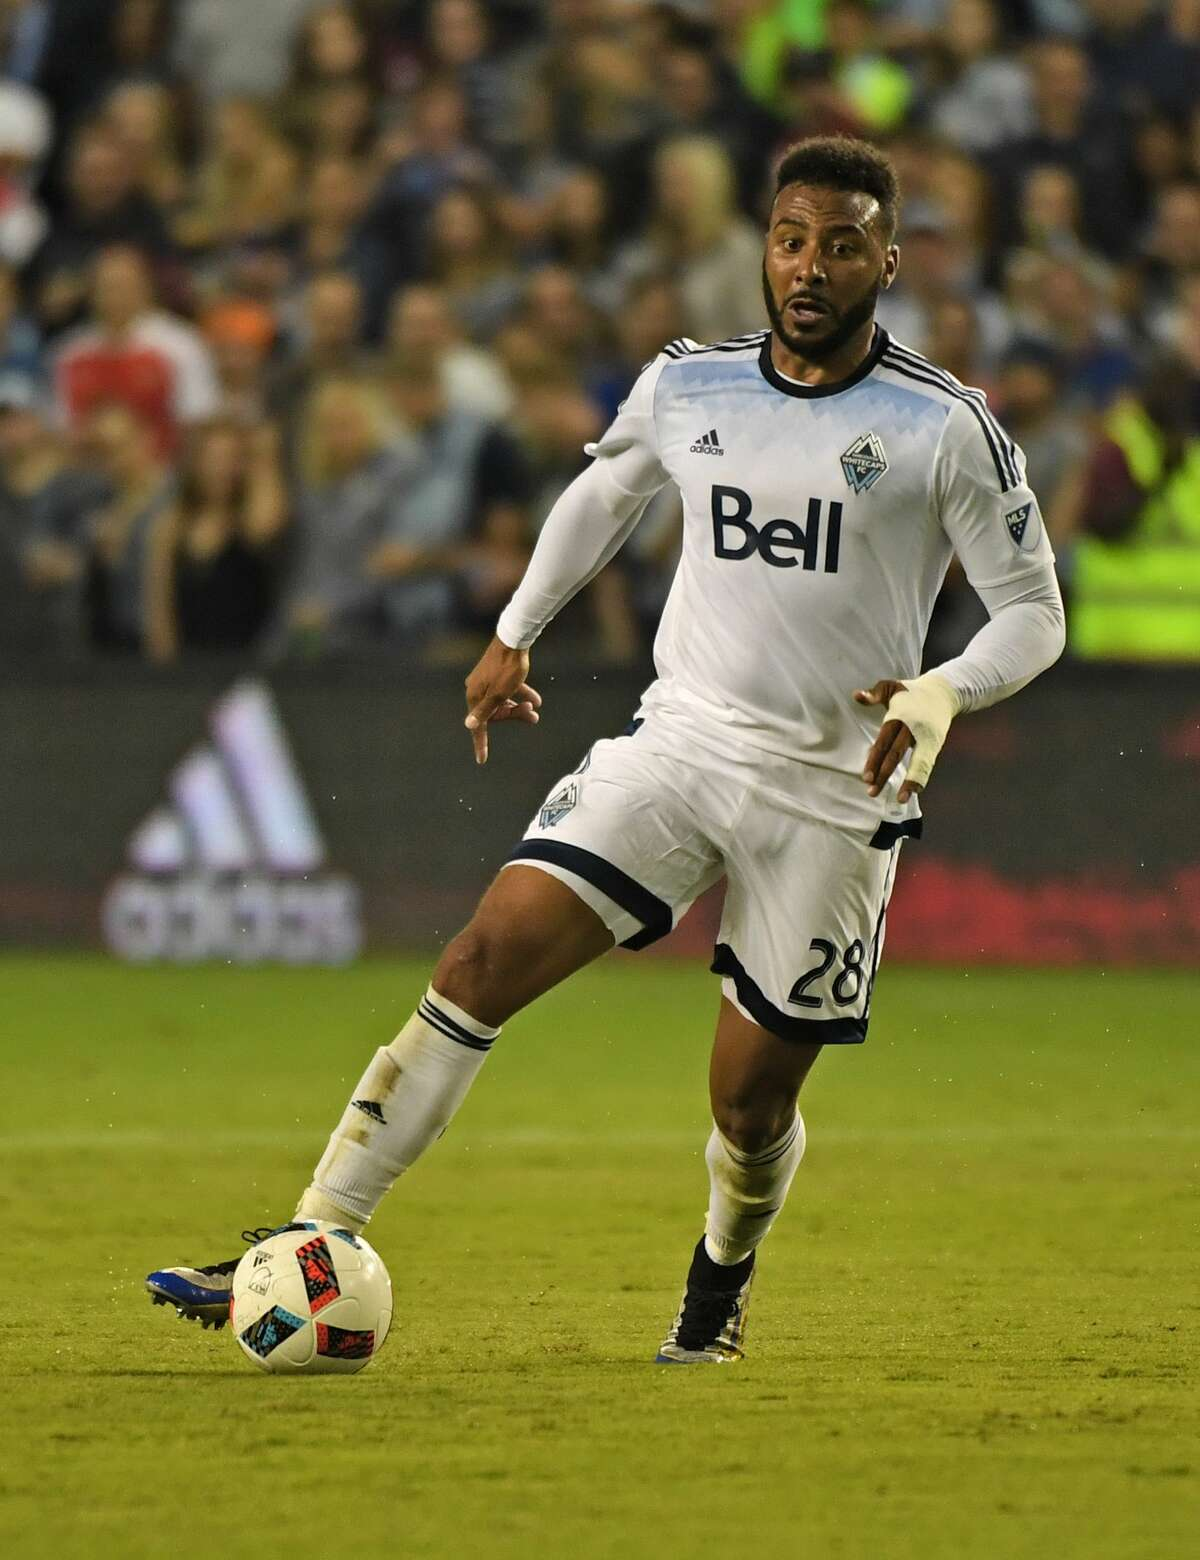 KANSAS CITY, KS - AUGUST 20: Forward Giles Barnes #28 of the Vancouver Whitecaps FC dribbles the ball up the field against Sporting Kansas City during the first half on August 20, 2016 at Children's Mercy Park in Kansas City, Kansas. (Photo by Peter G. Aiken/Getty Images)